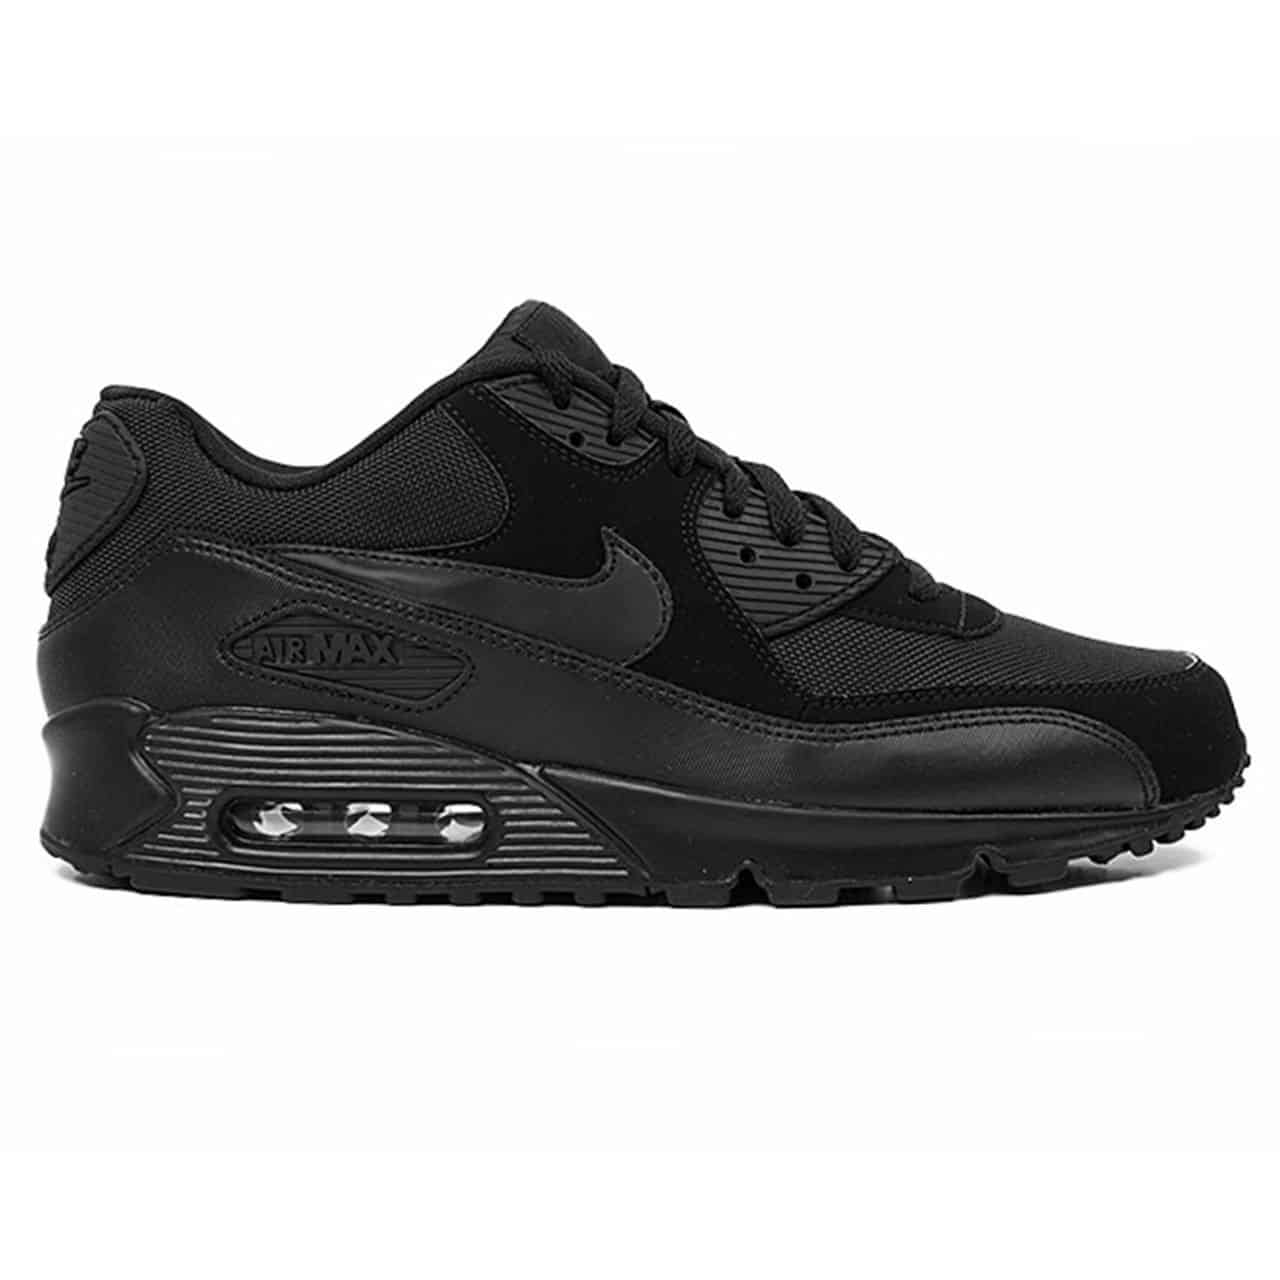 ADIDASI ORIGINALI NIKE AIR MAX 90 ESSENTIAL - 537384 090